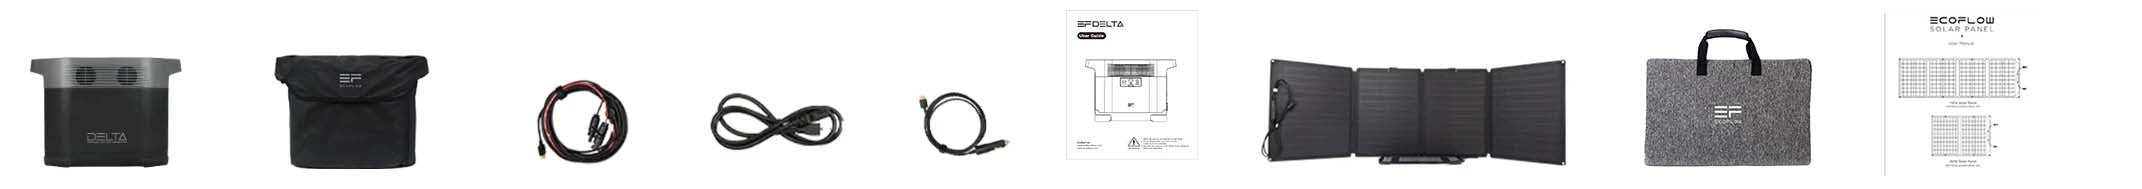 EcoFlow DELTA power station+1x110W Solar Panel What's in the Box